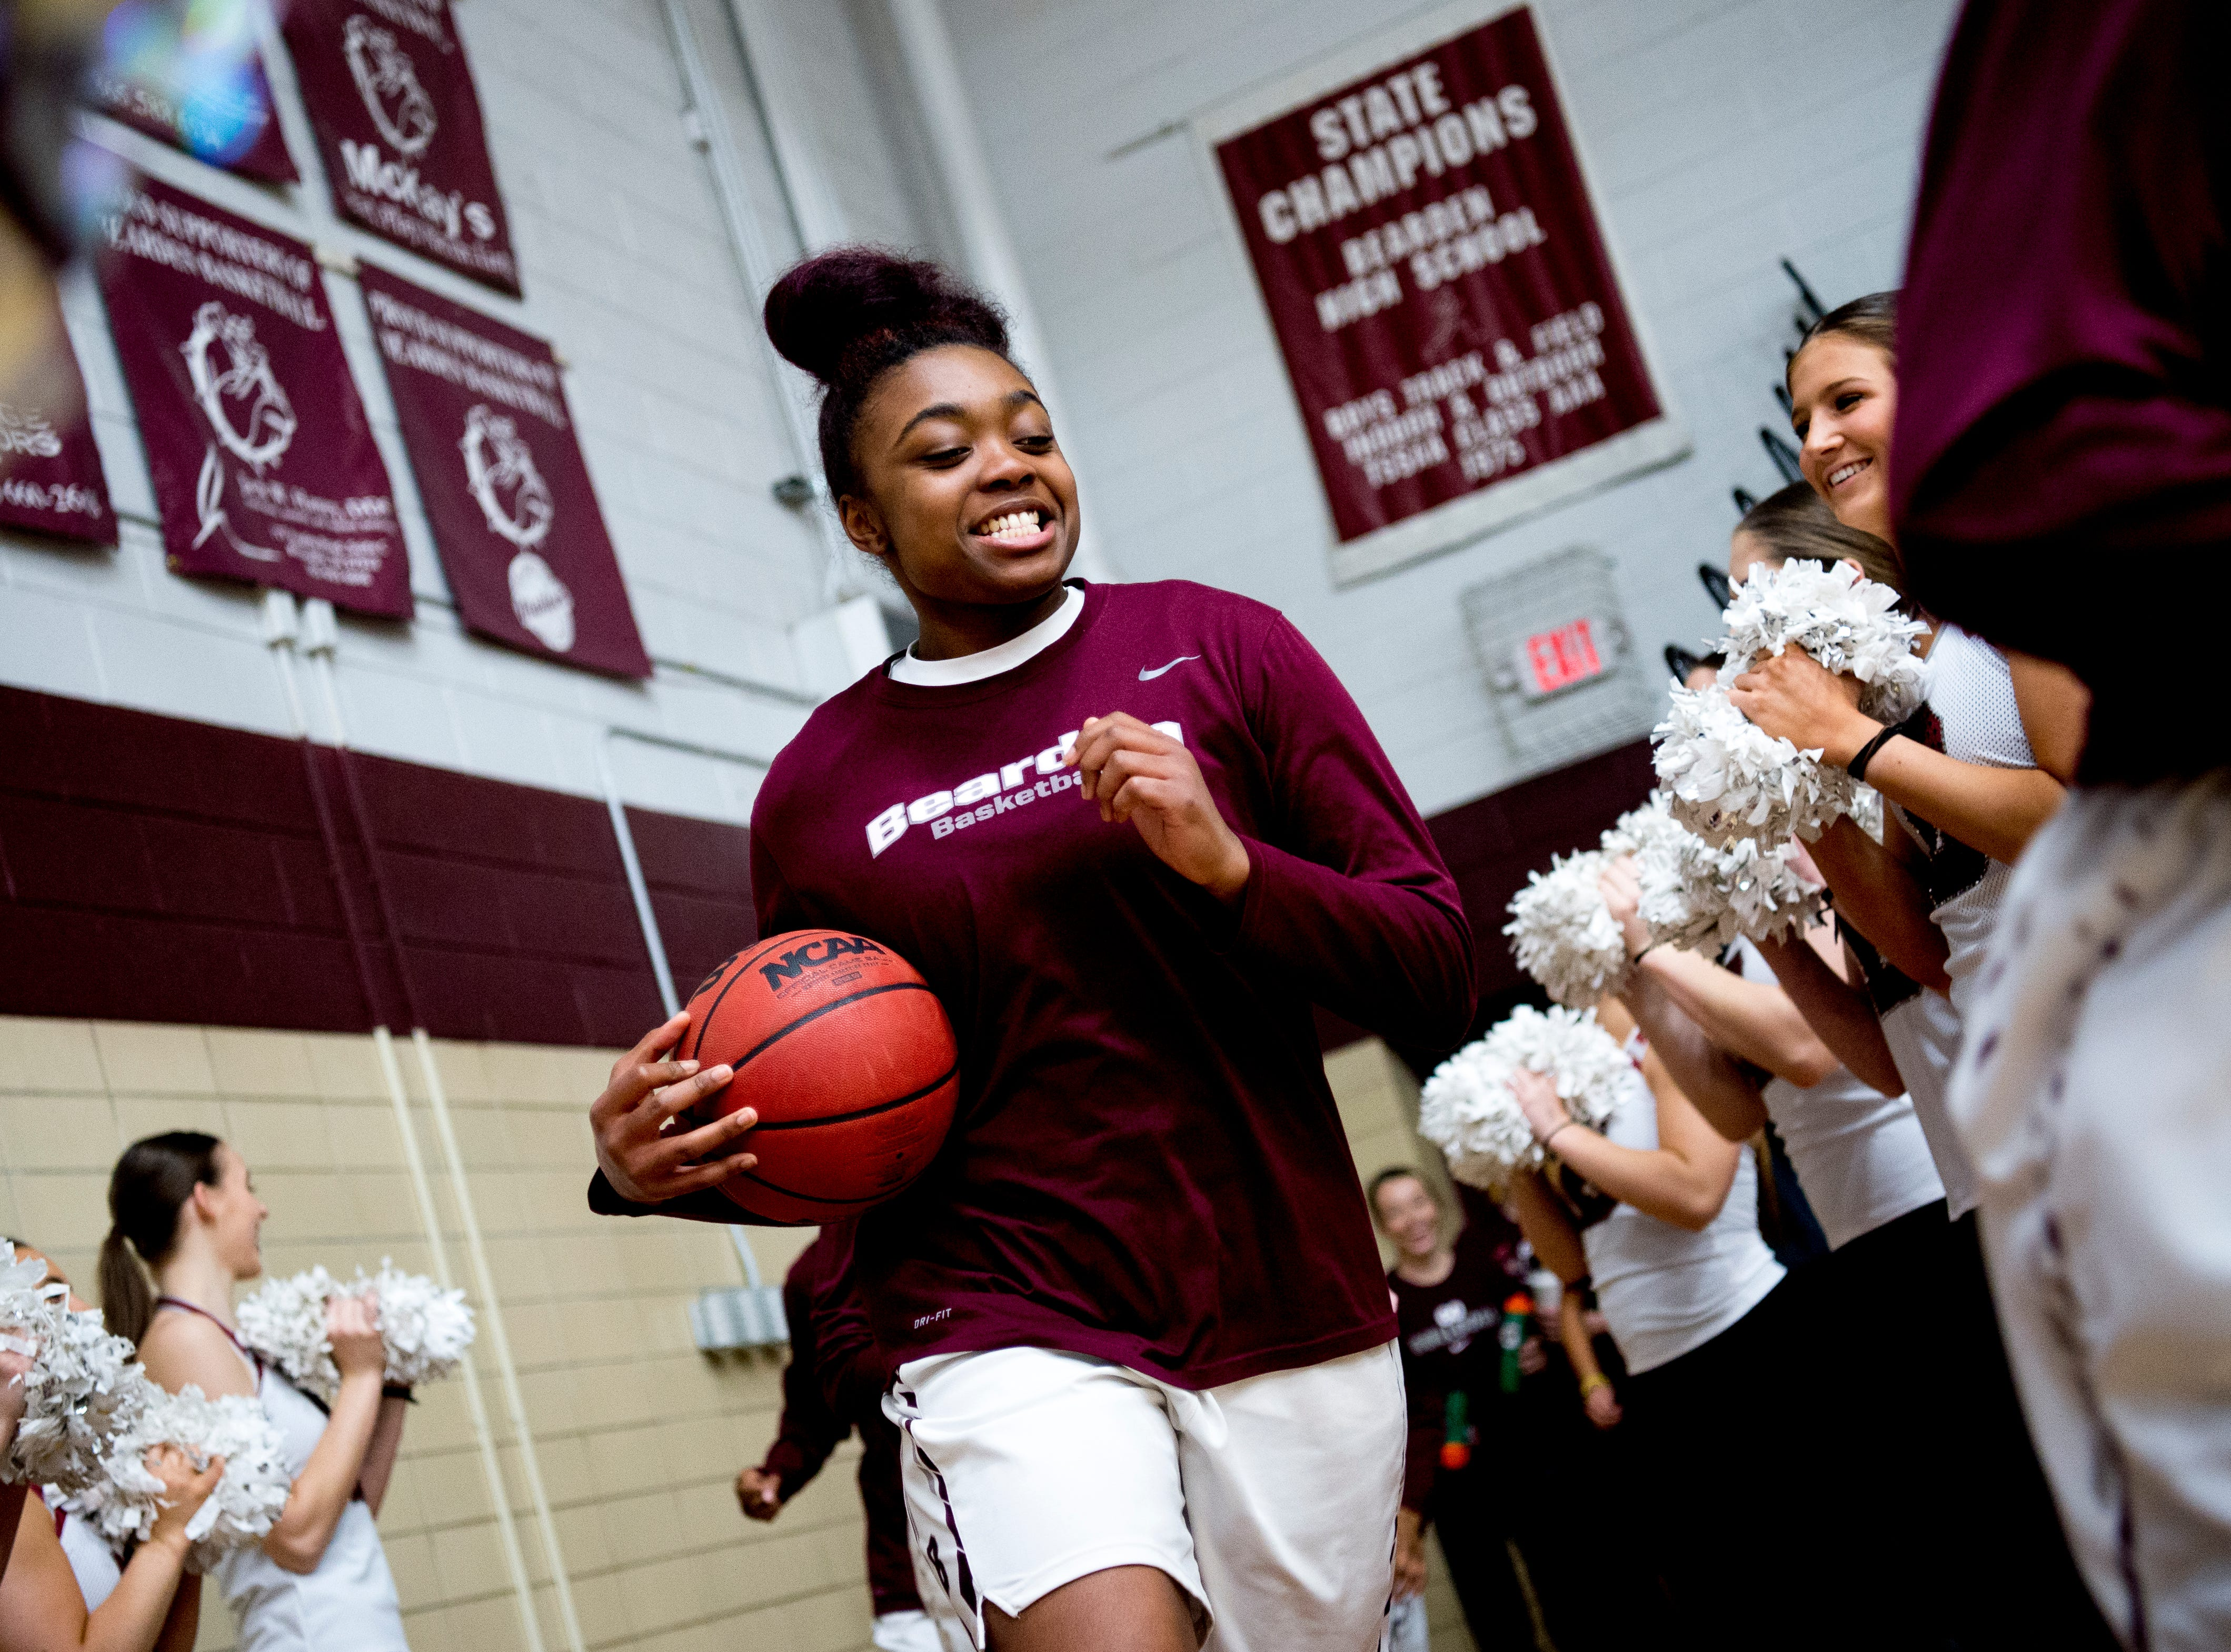 Bearden's Jakhyia Davis (42) runs from the locker room during a game between Bearden and Catholic at Bearden High School in Knoxville, Tennessee on Thursday, January 10, 2019.